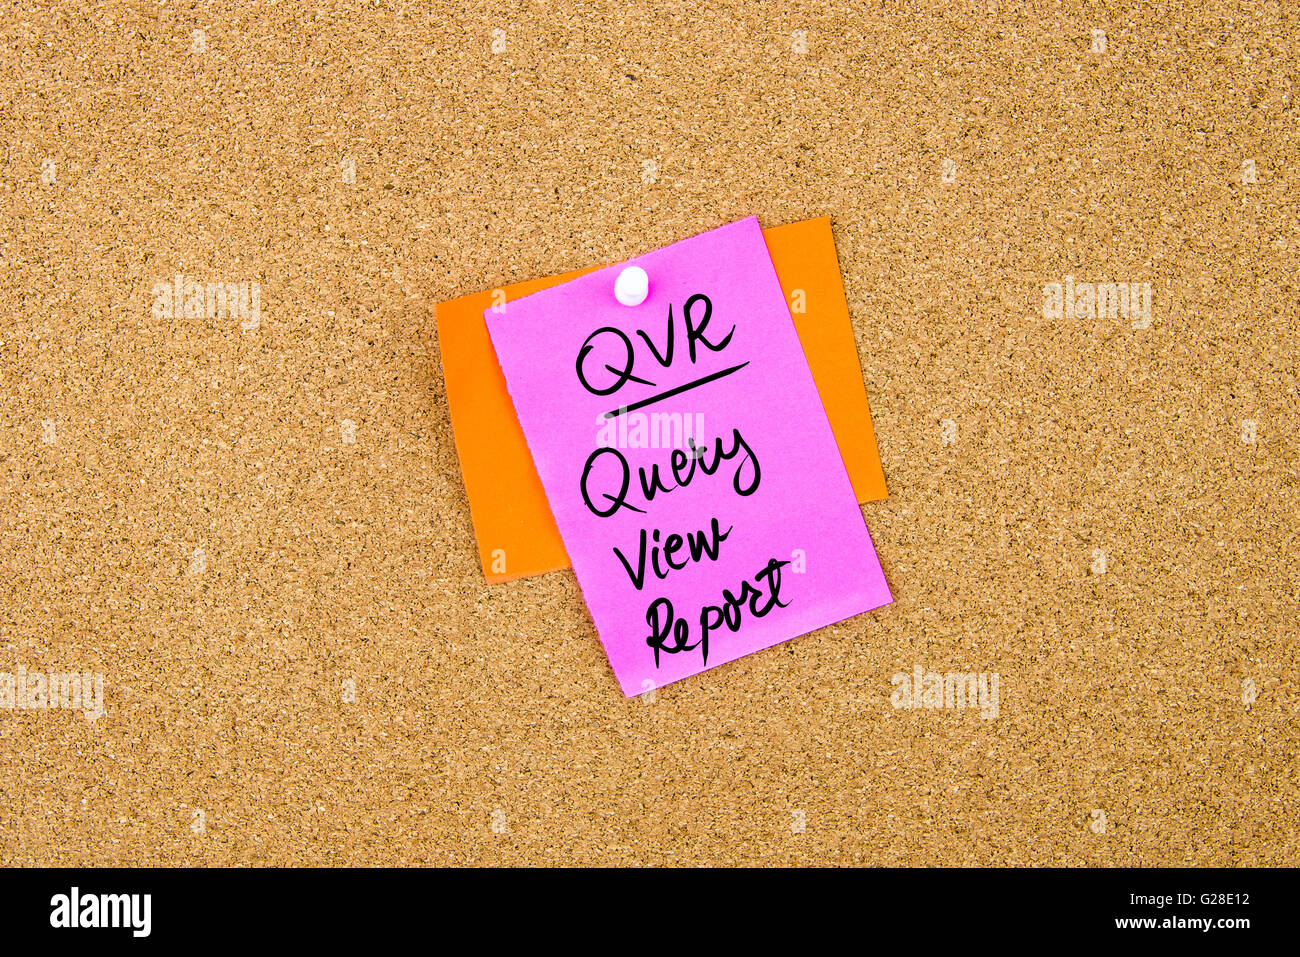 Business Acronym QVR Query View Report written on paper note pinned on cork board with white thumbtack, copy space - Stock Image